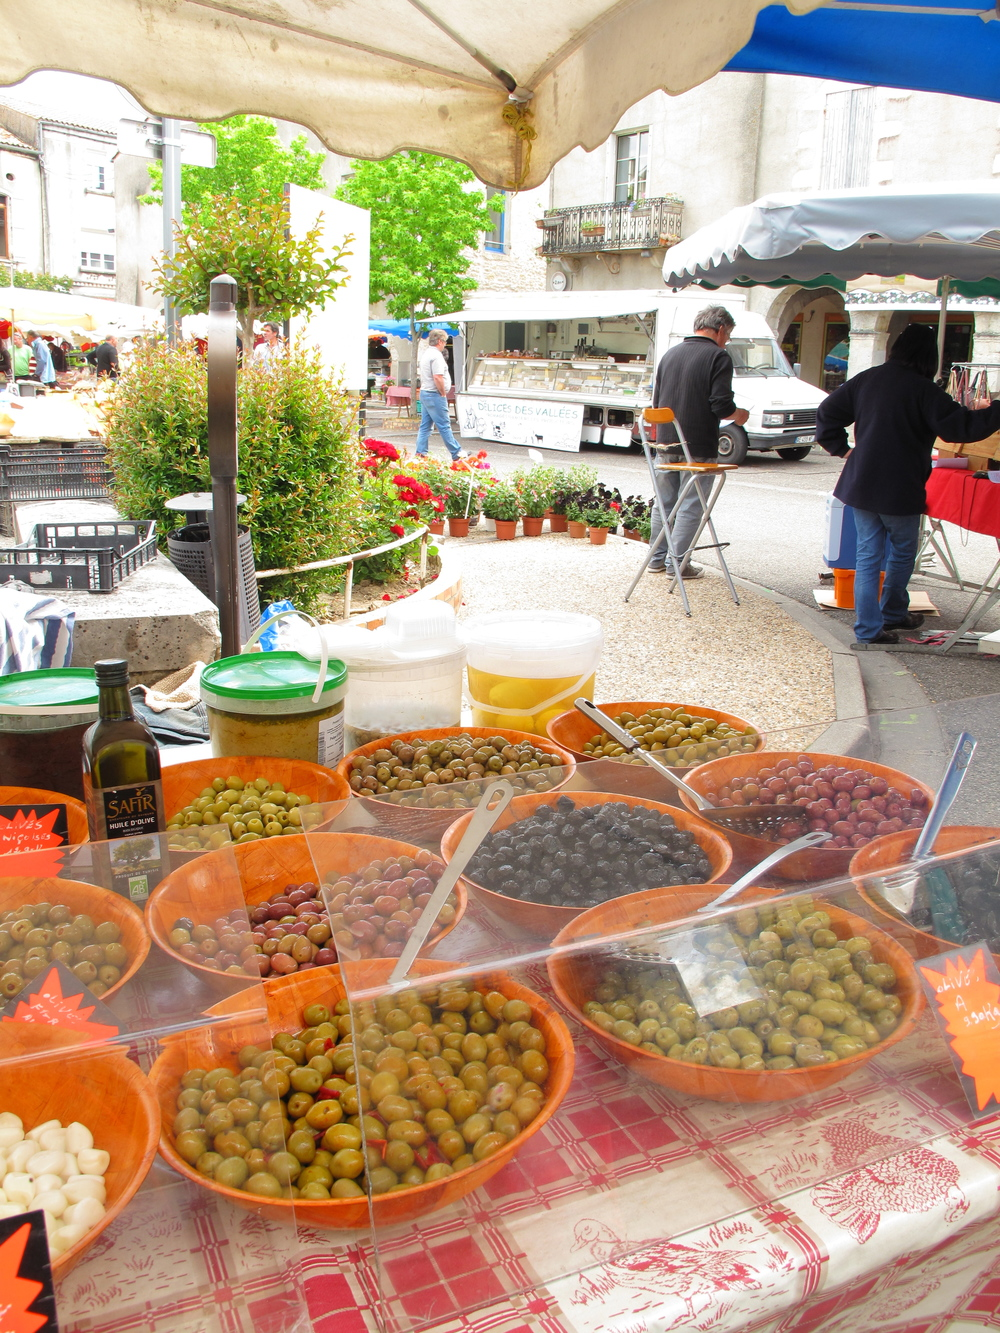 Market place at Duras, with a stall selling all types of olives!